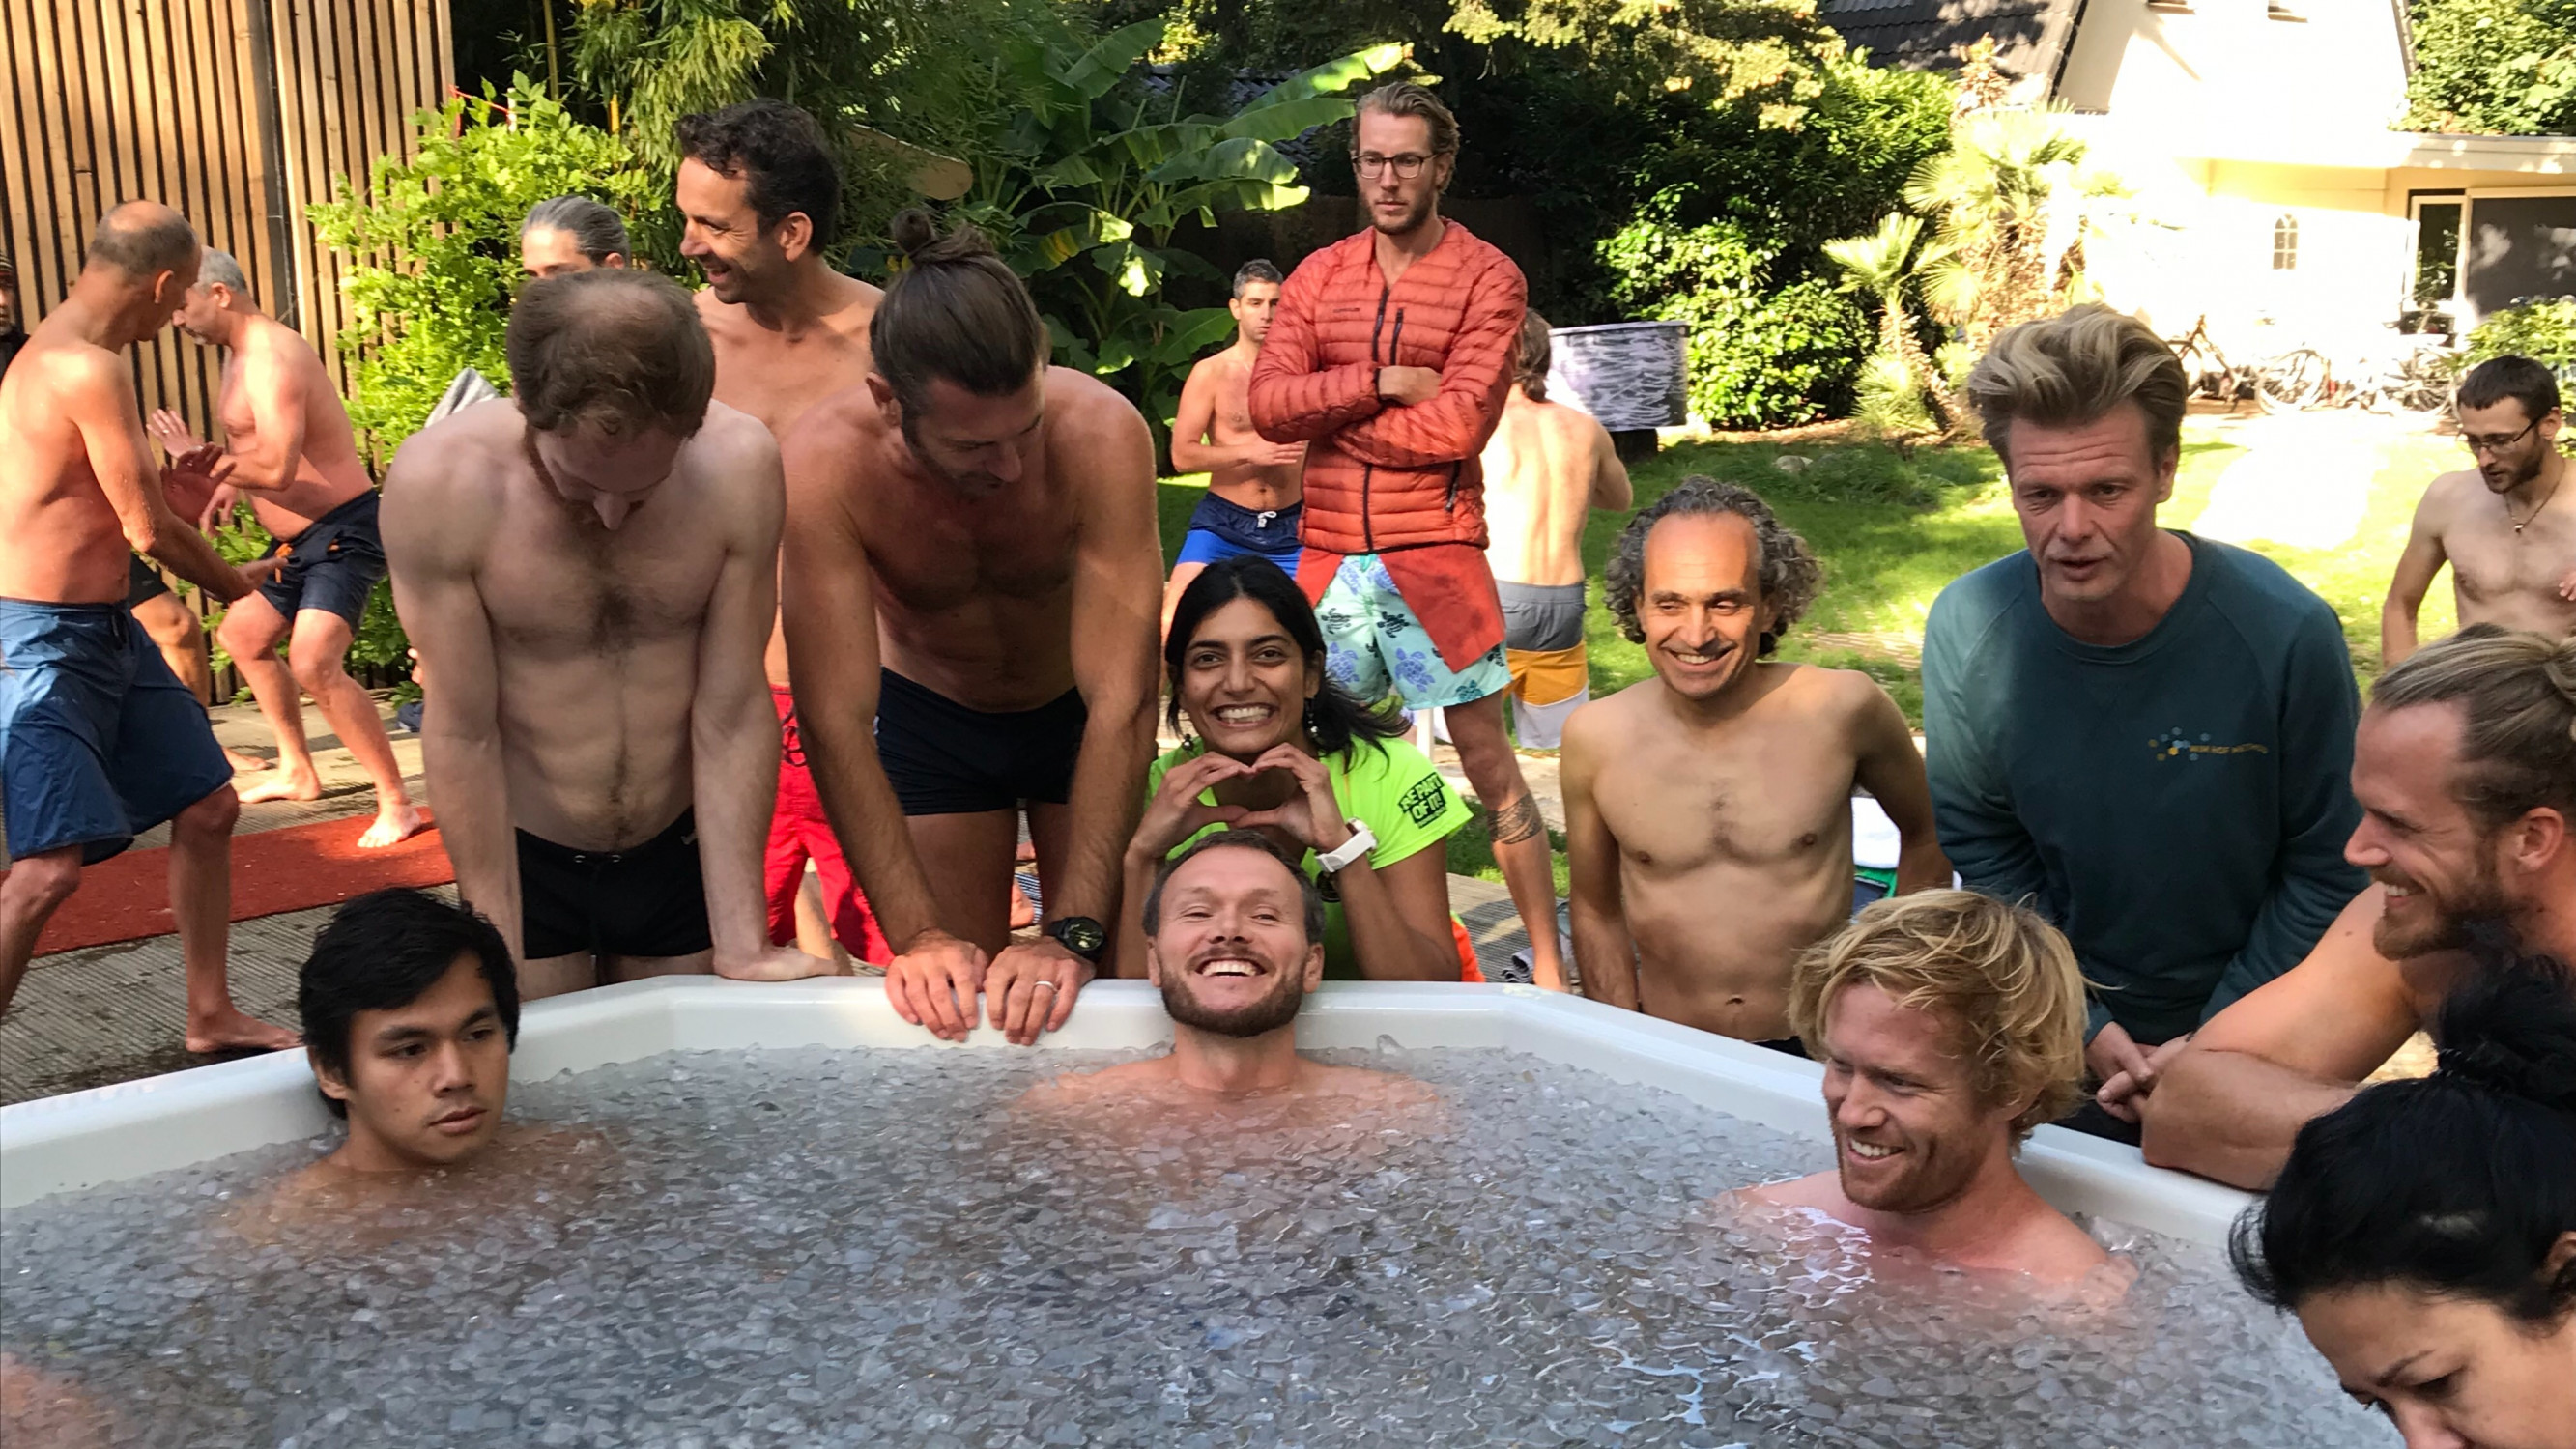 Image 15 of 27 - Experience the Wim Hof Method to get an impression of  at